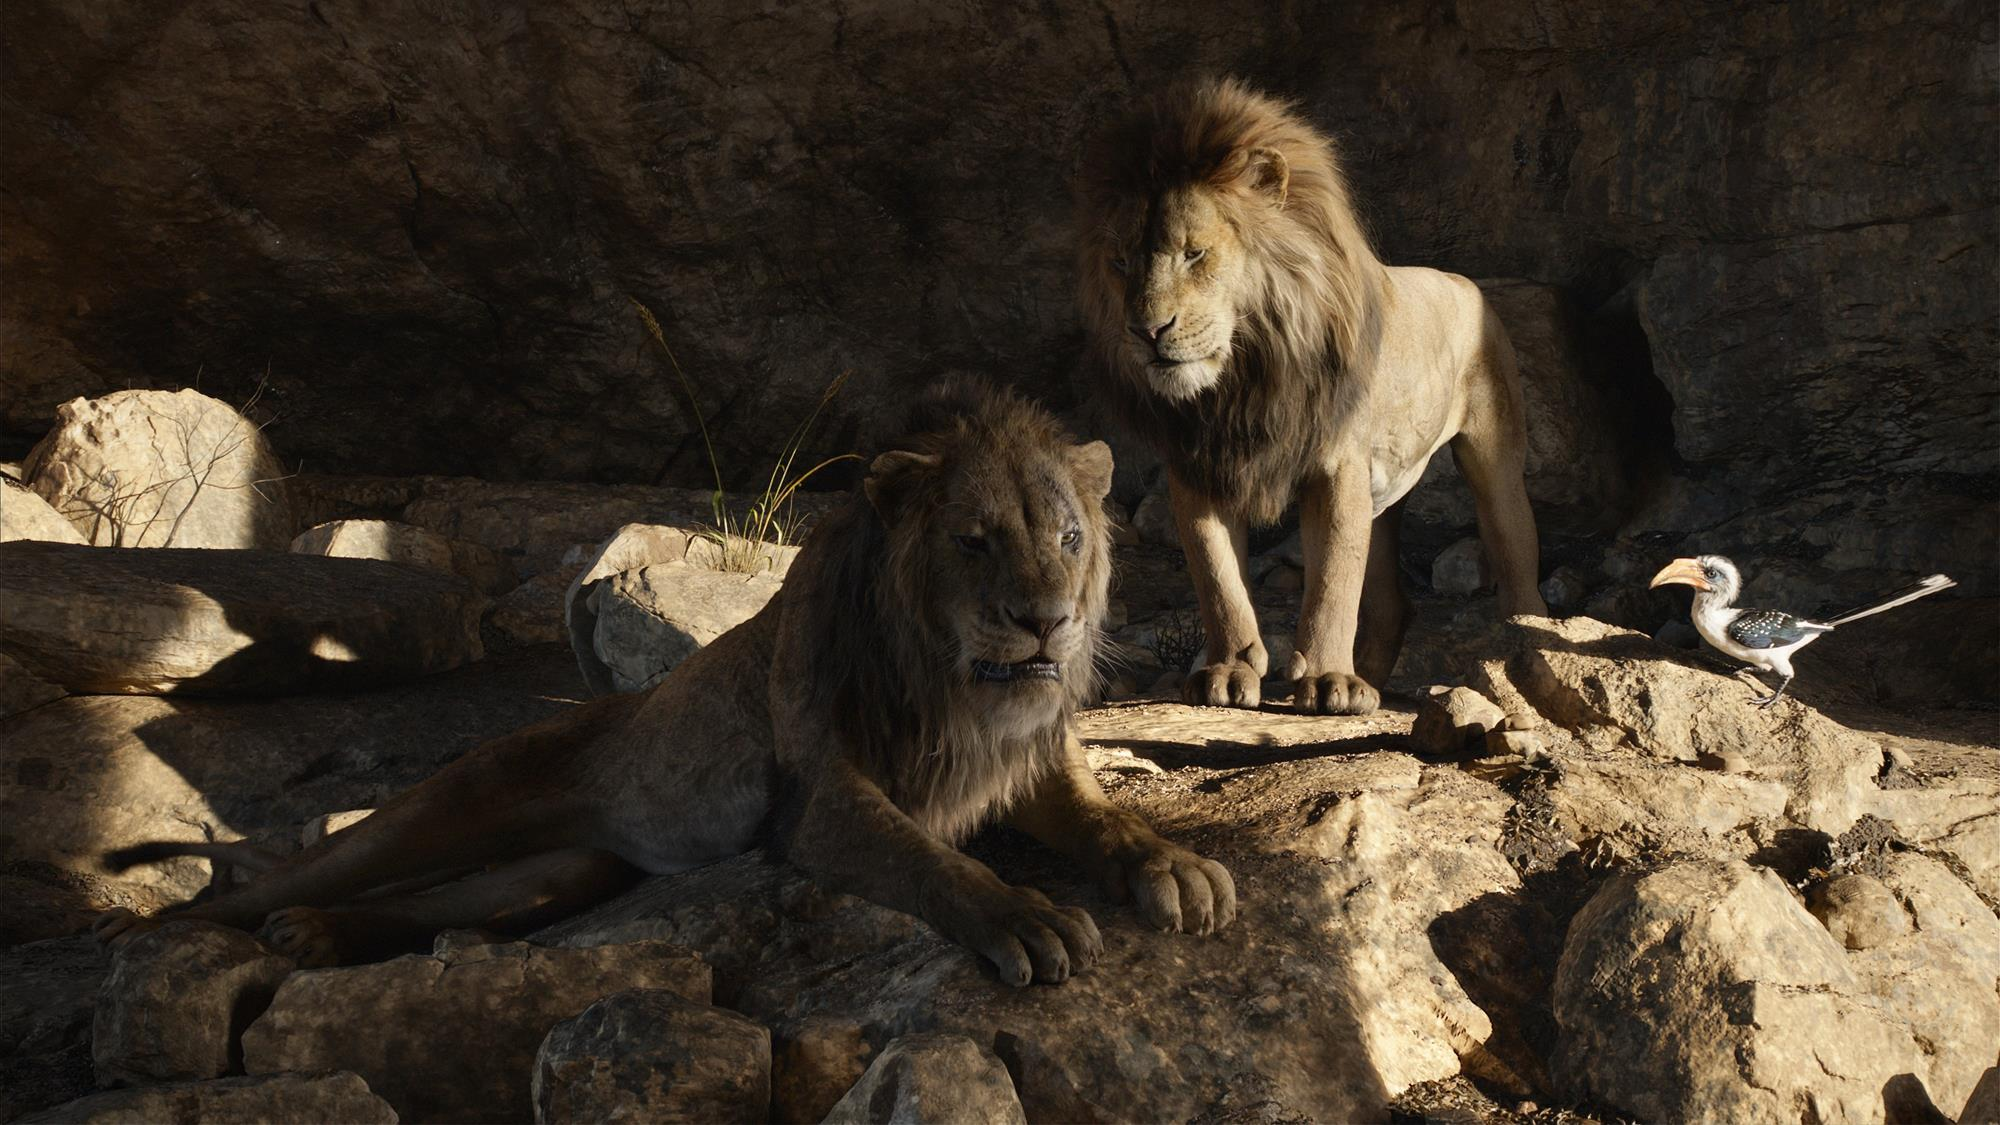 Animal Instincts 3 Full Movie behind the scenes: the lion king | industry trends | ibc